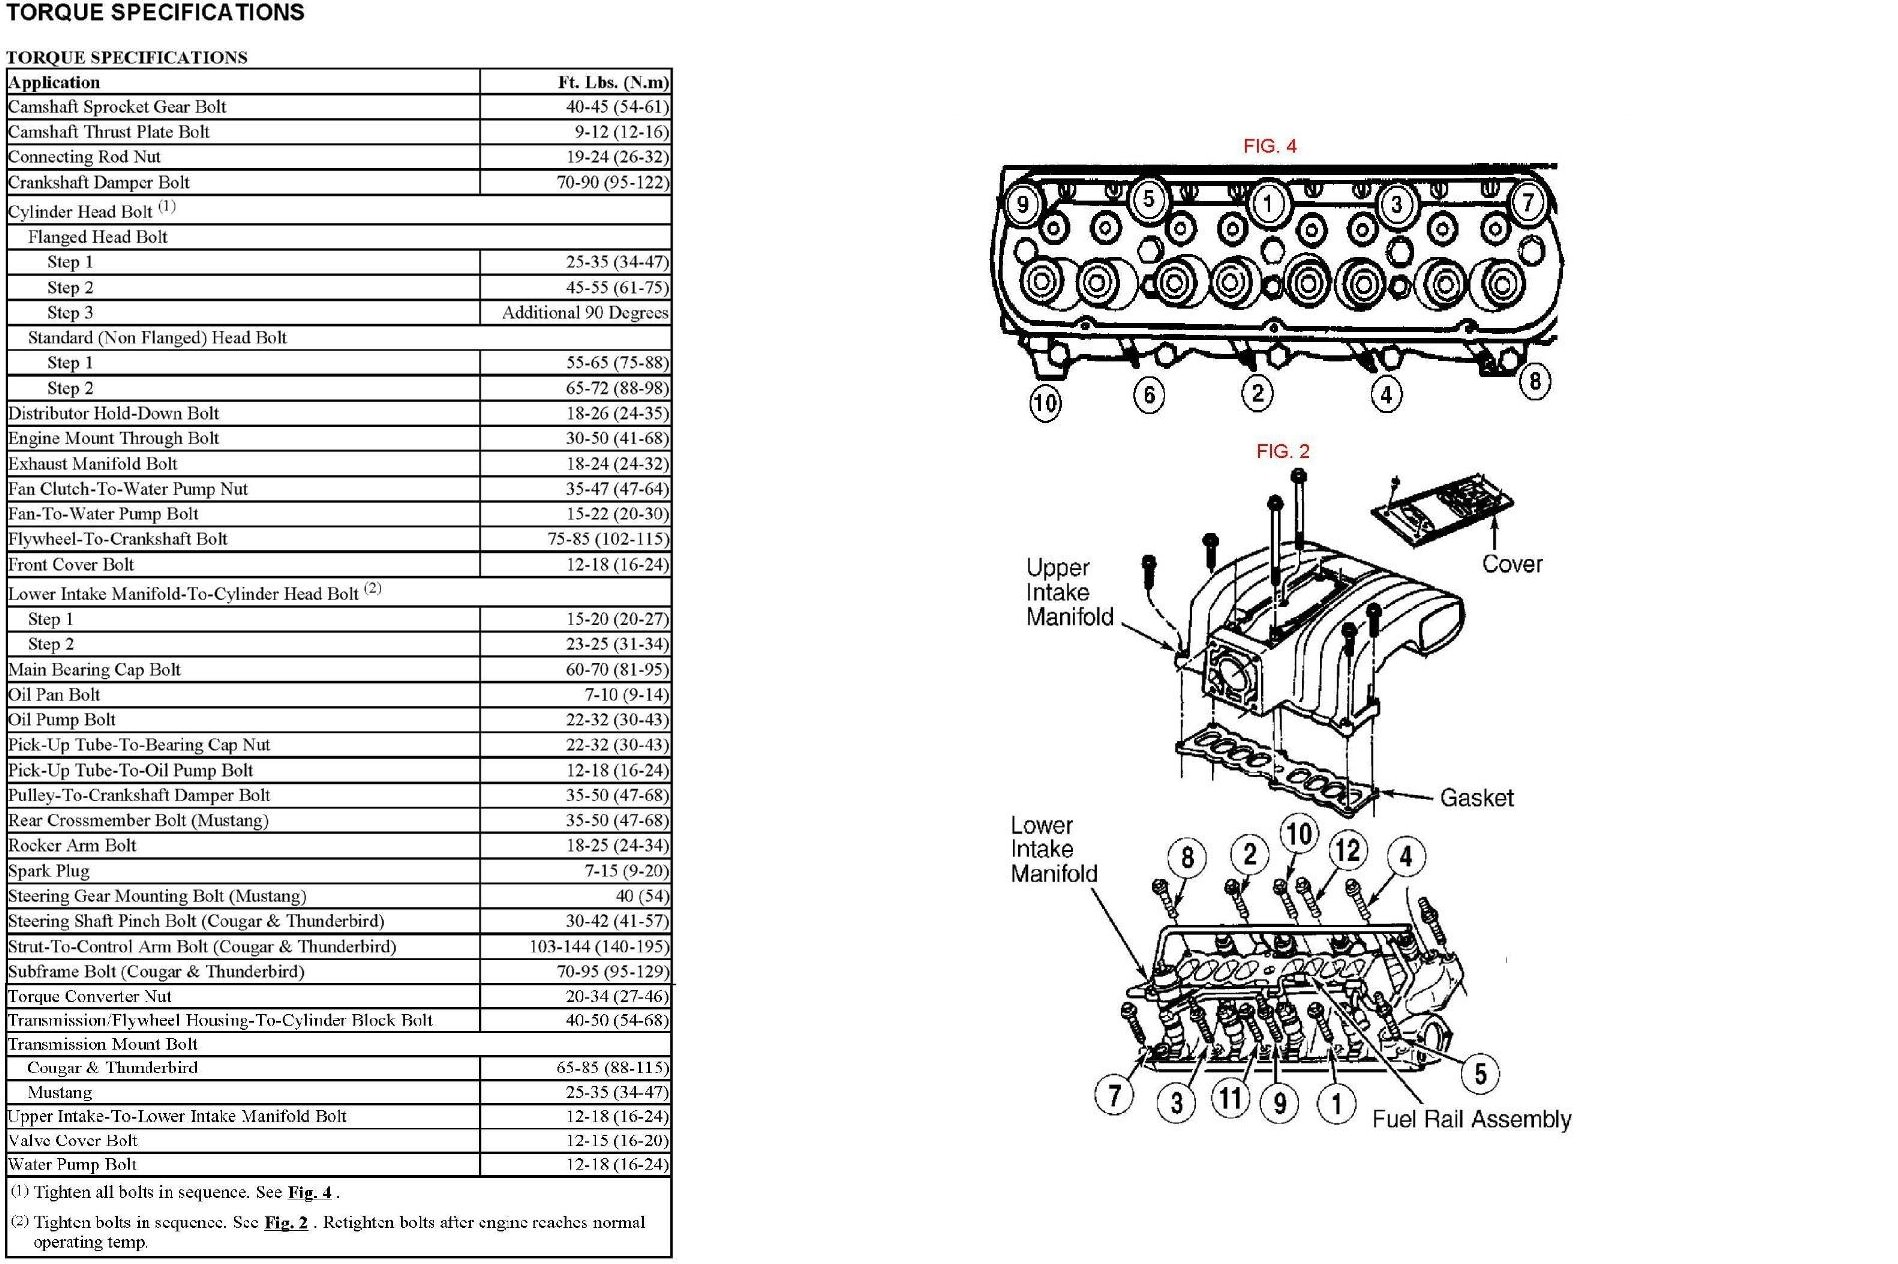 Chevy Camaro V6 Engine Specs